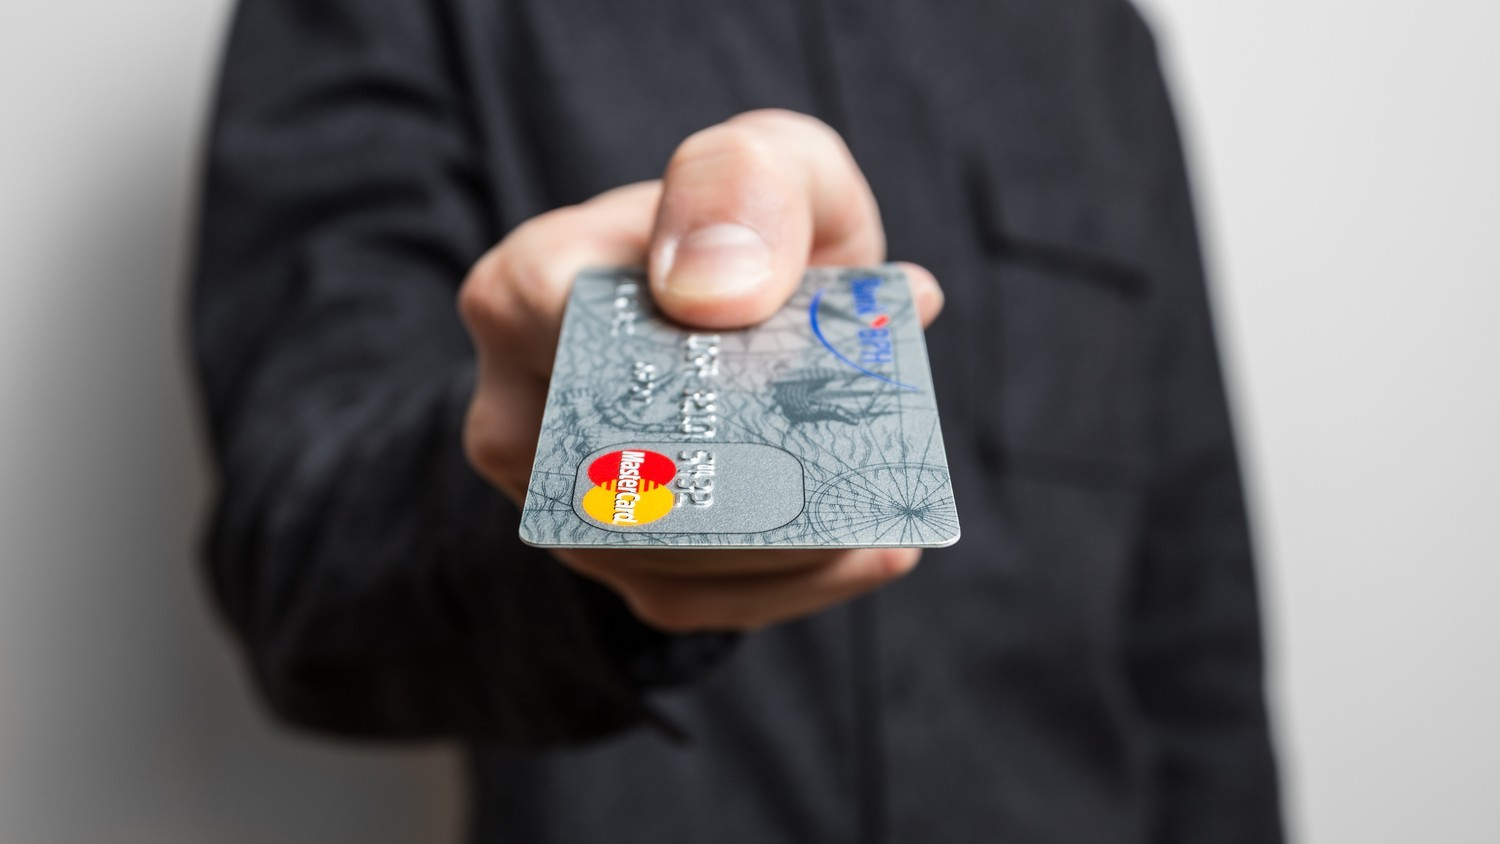 'Holding credit card' by CafeCredit.com (CC 2.0)